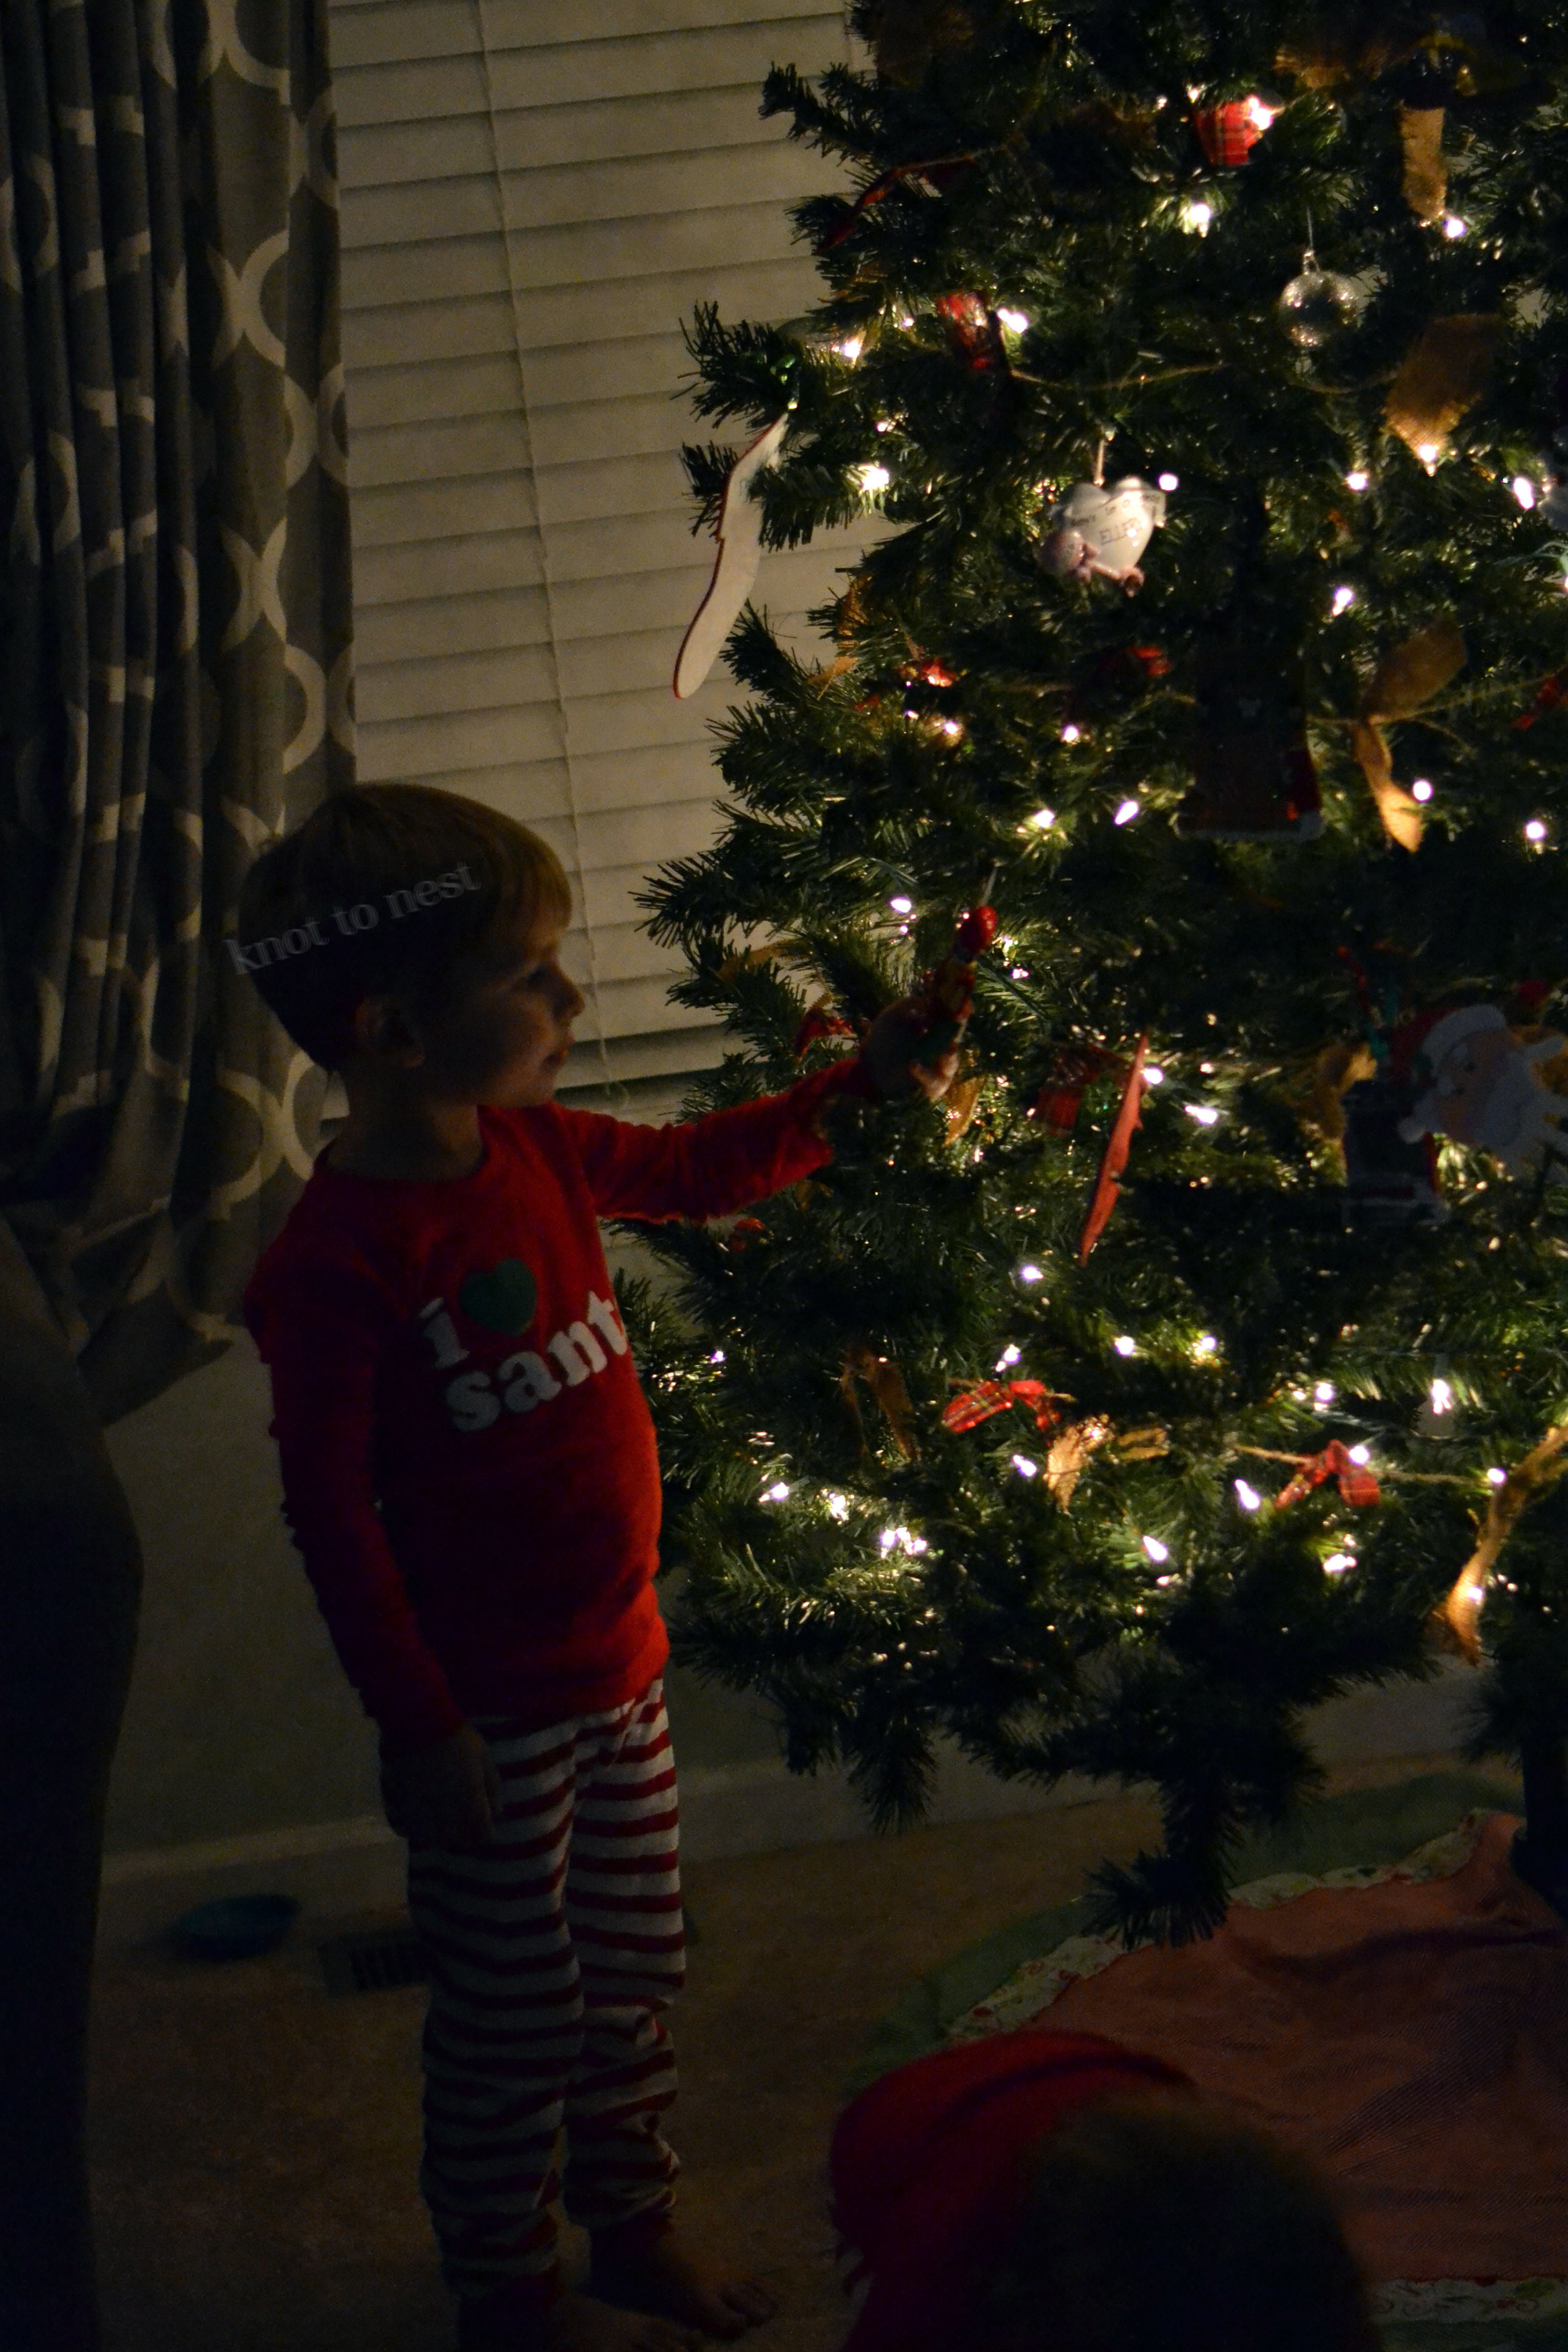 The magic of the Christmas tree through a child's eyes.